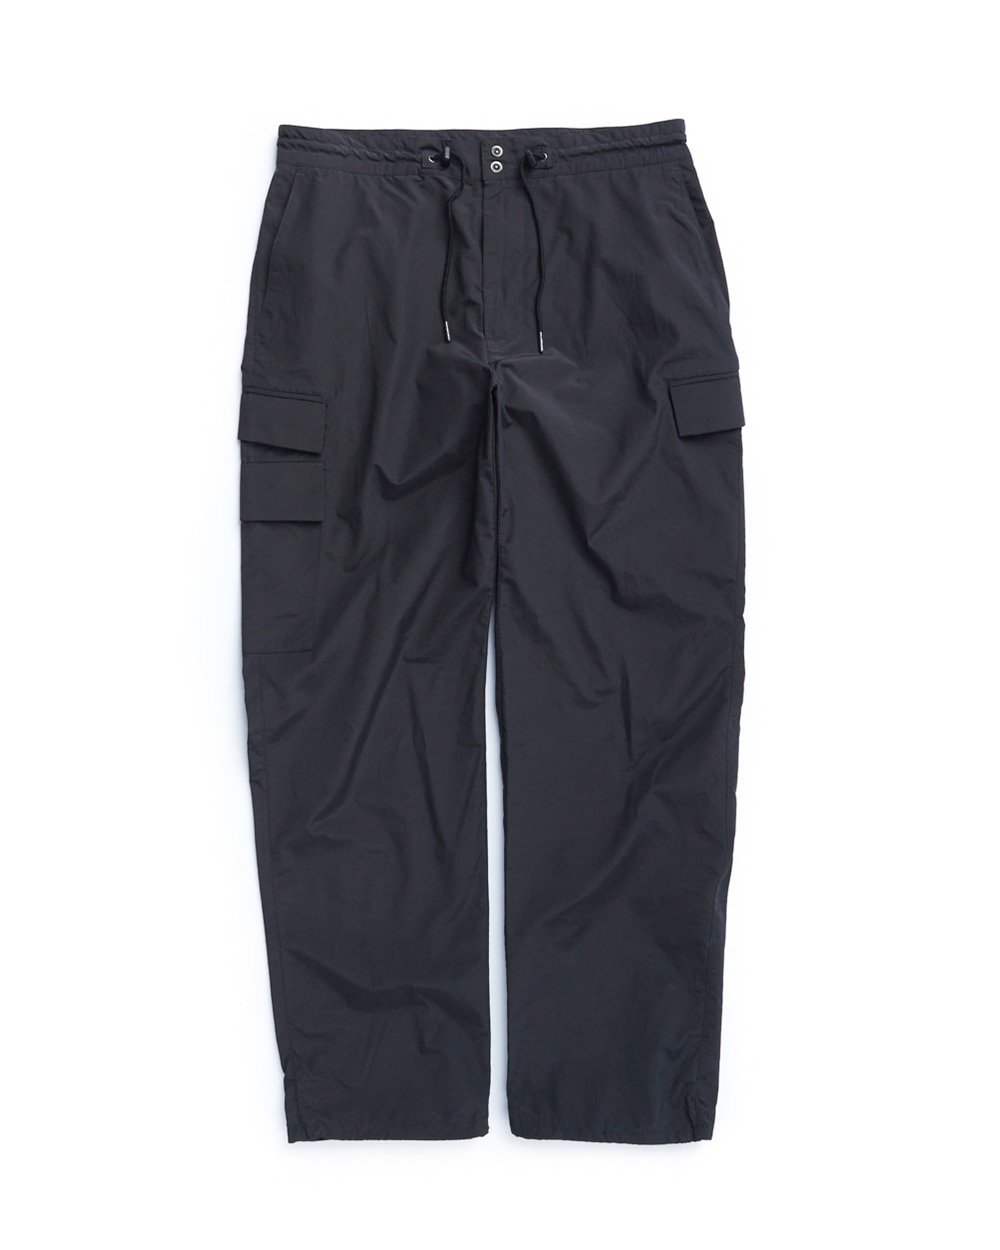 언어펙티드 UTILITY FLAP POCKETS PANTS (Charcoal)